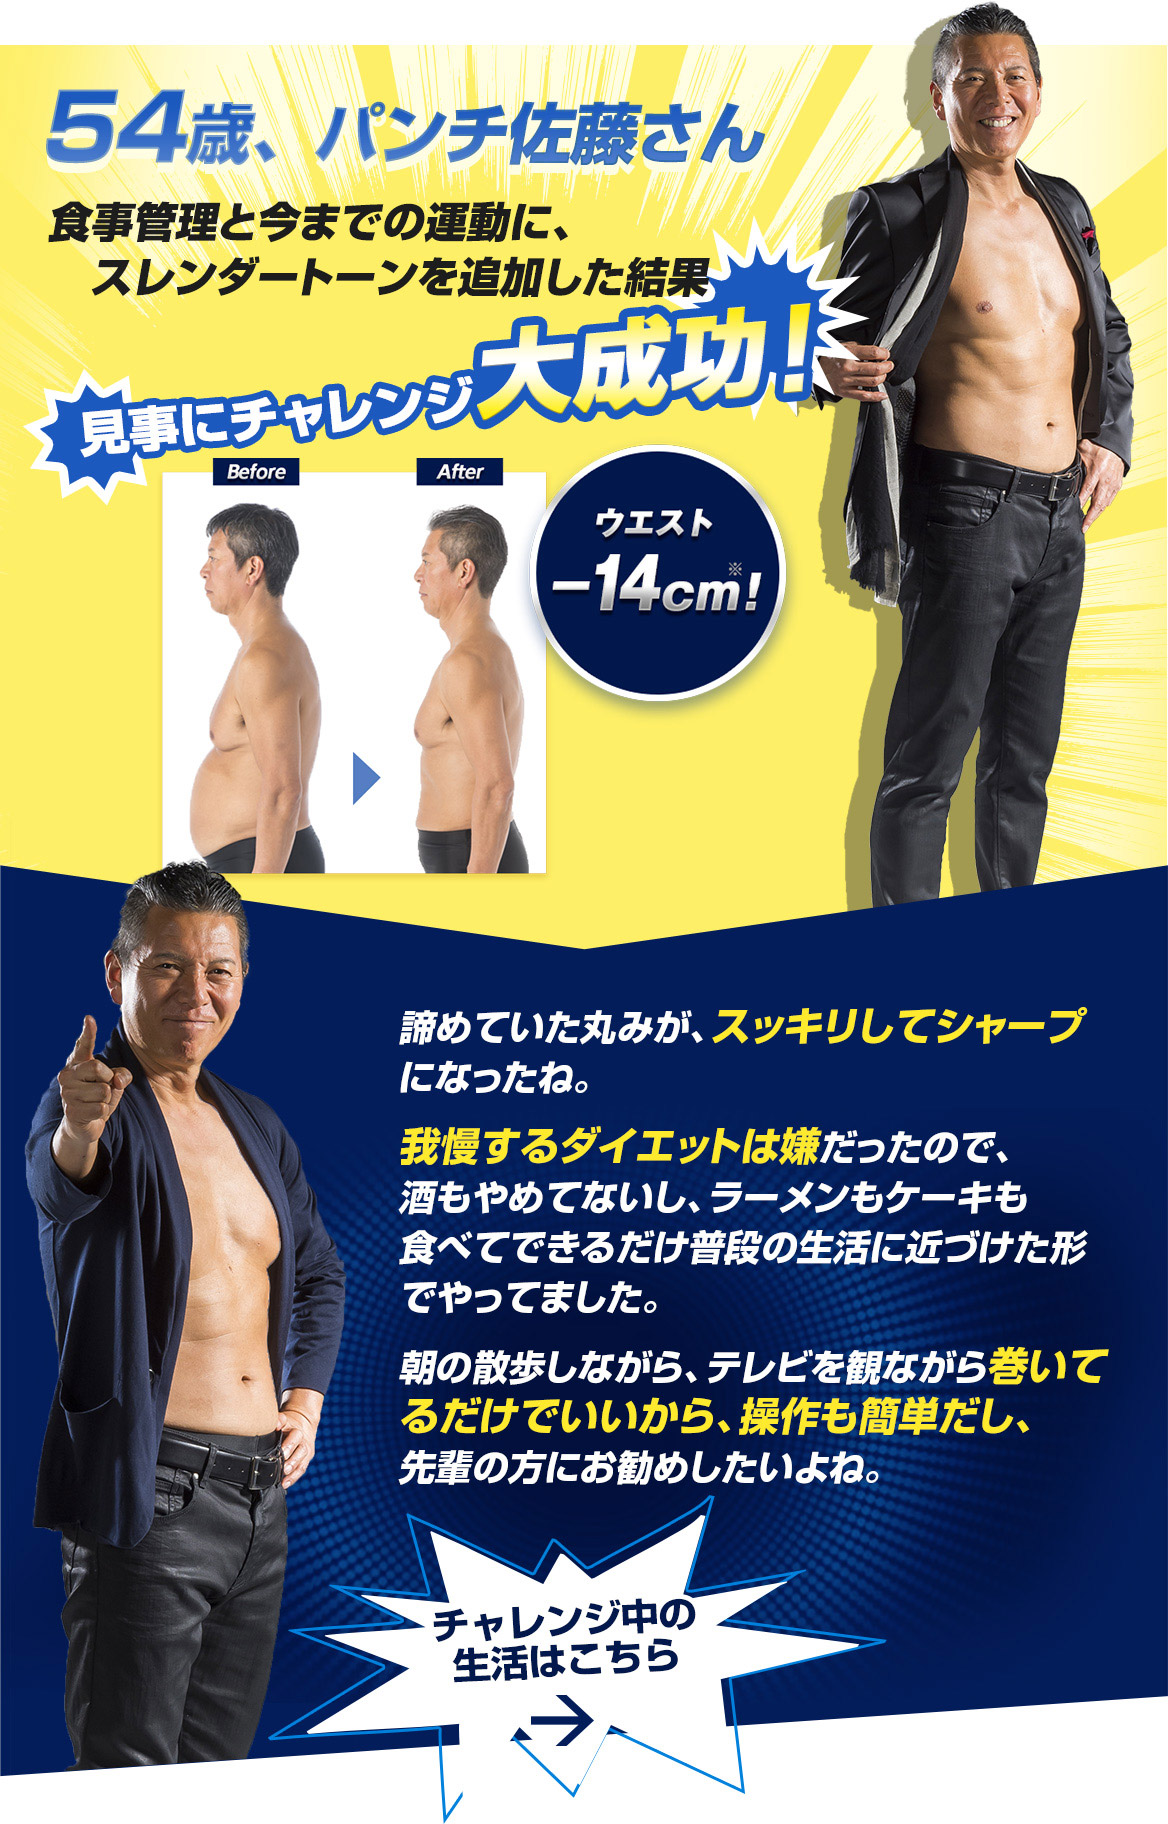 54-year-old, Mr. Punch Sato's diet management and the result of adding slender tone to the exercise so far The challenge was a great success! Before After Waist-14 cm ※! The roundness I gave up was clearer and sharper. I didn't like to go on a diet to endure, so I didn't stop drinking, I ate ramen and cake, and I did it as close as possible to my daily life. It's as easy as you take a morning walk while watching TV, so it's easy to operate and I would recommend it to seniors. Life during the challenge is here →